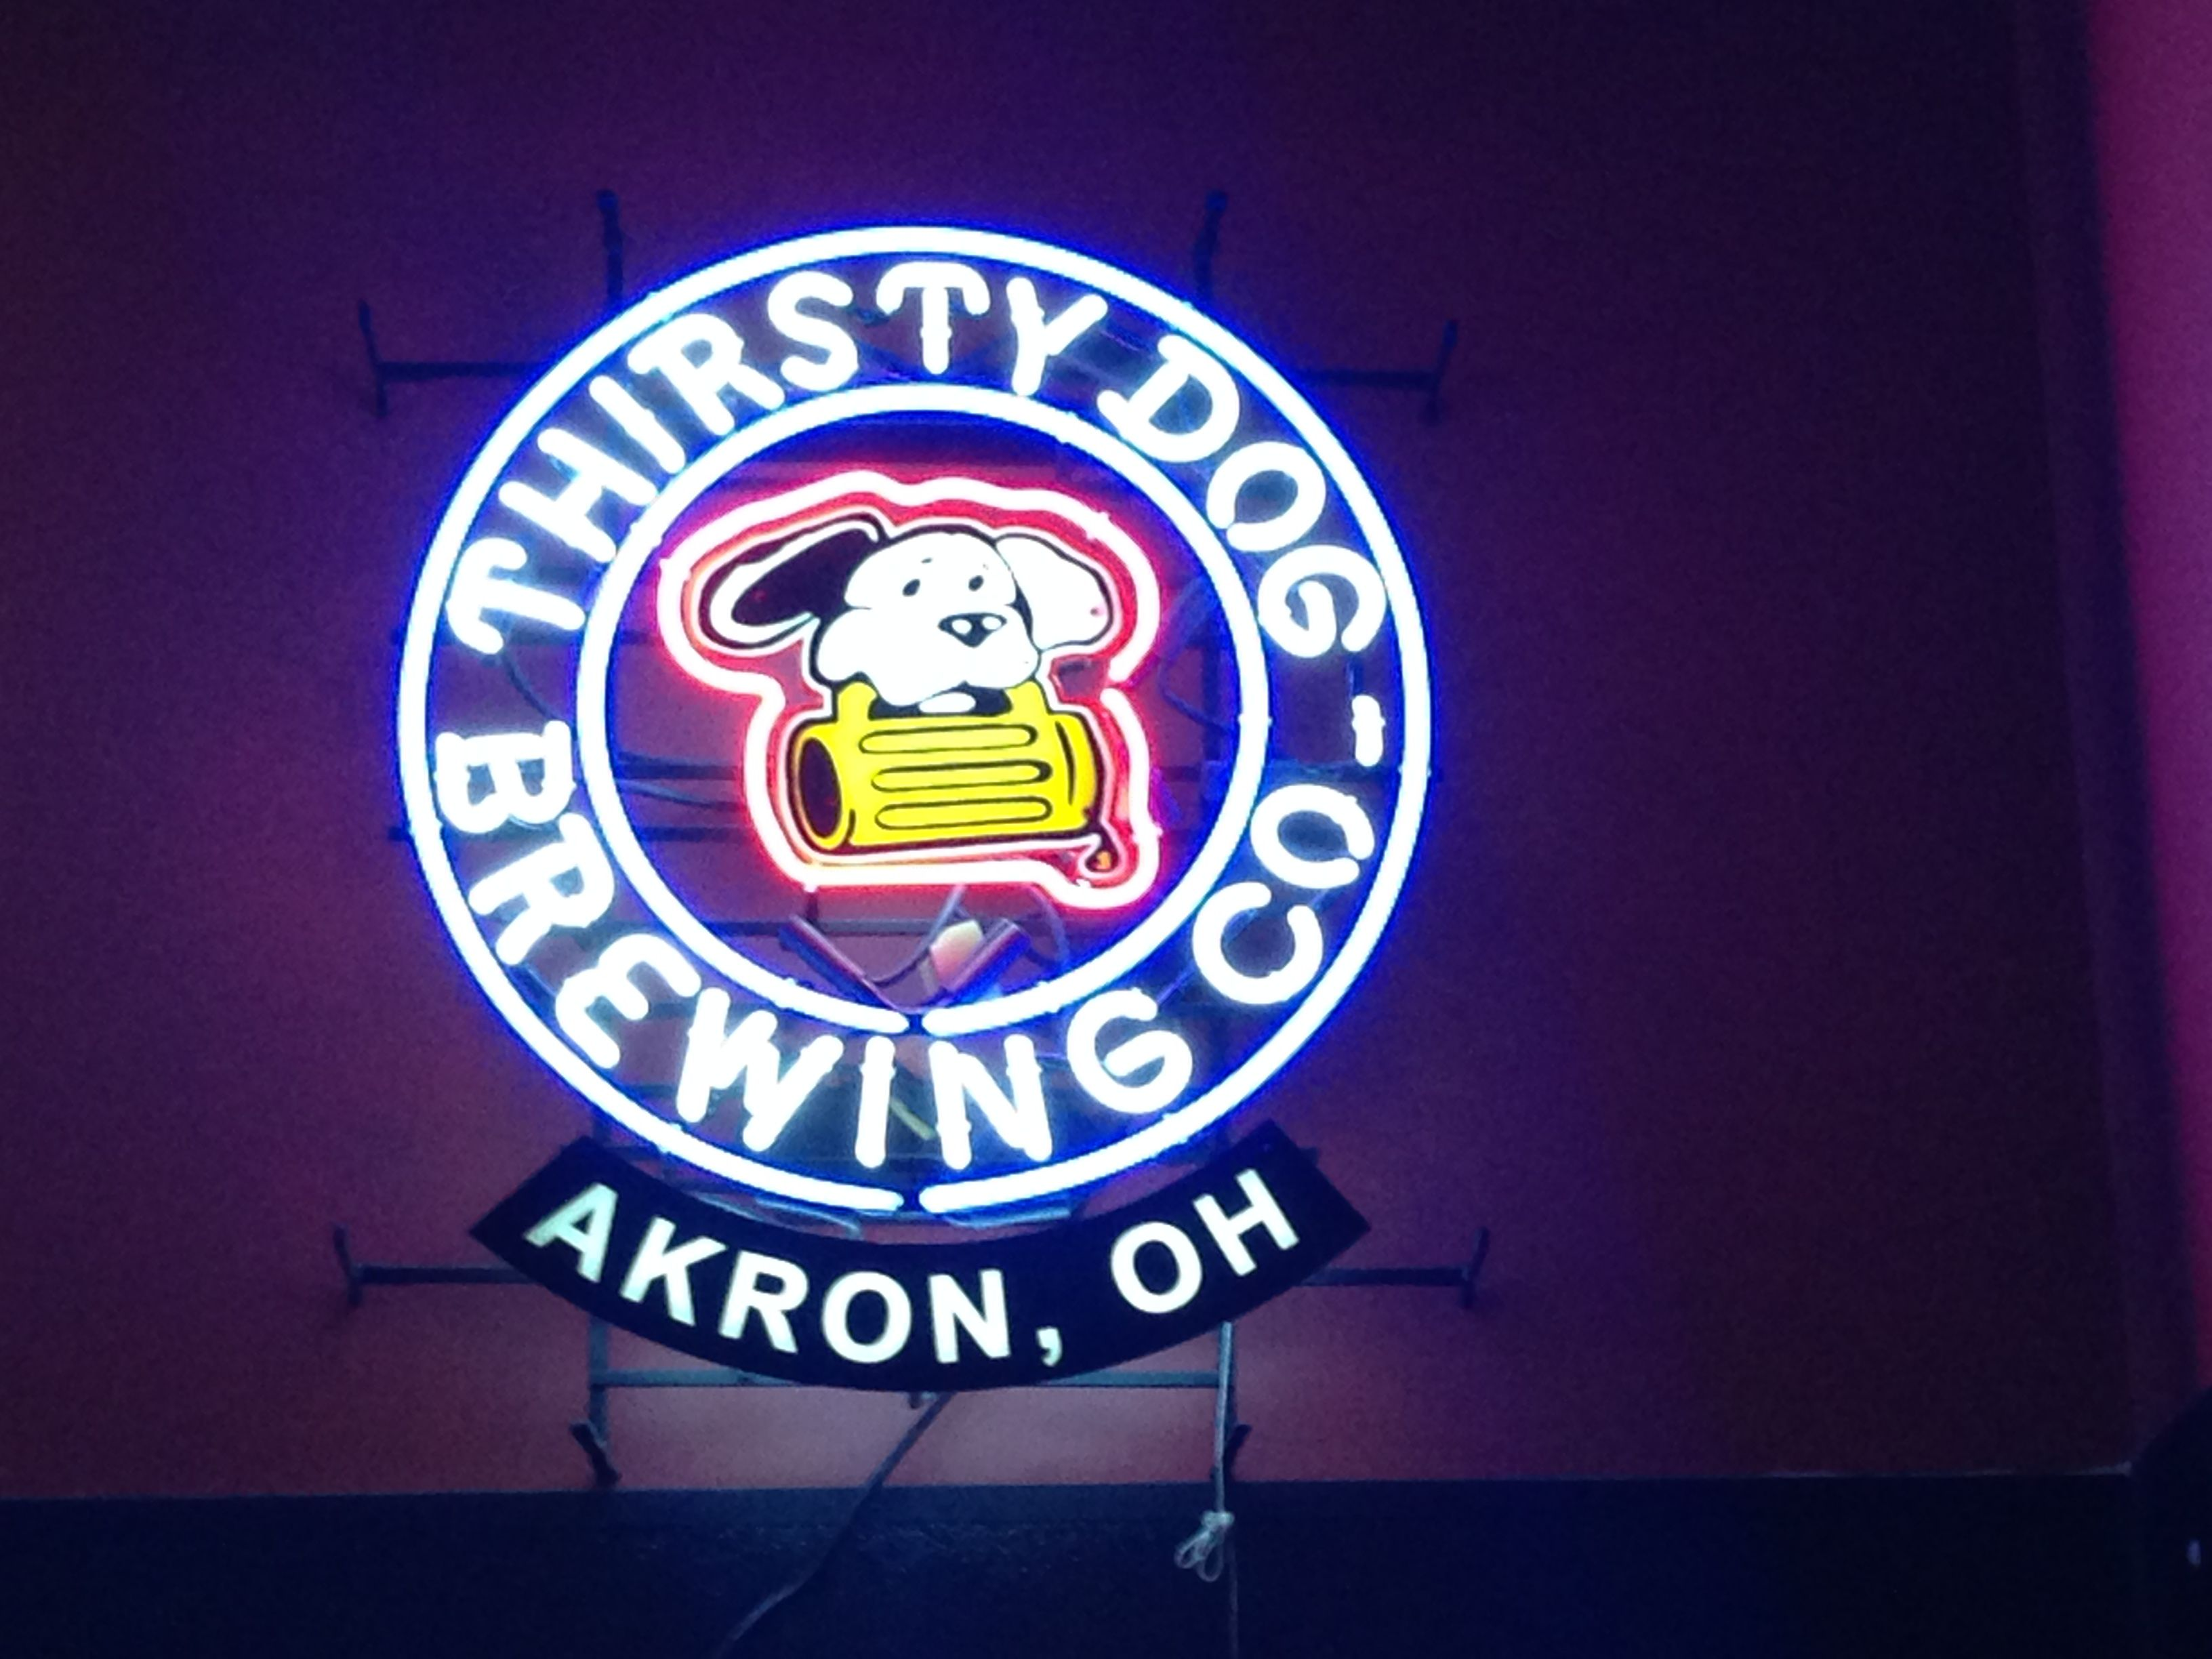 Neon Beer Sign Thirsty Dog Brewing Co Akron Ohio Neon